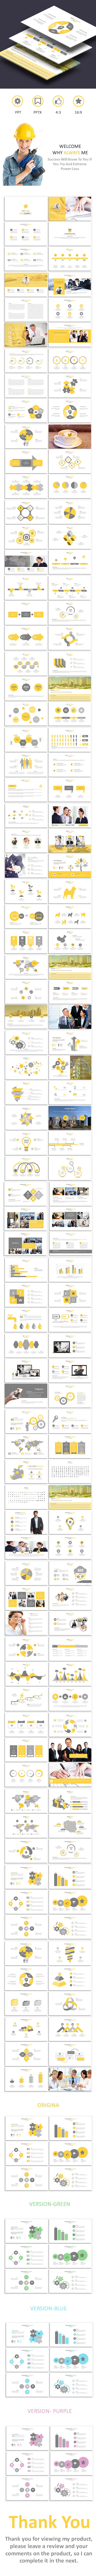 Powerpoint Template #design #slides Download: http://graphicriver.net/item/why-powerpoint-templates/13203627?ref=ksioks